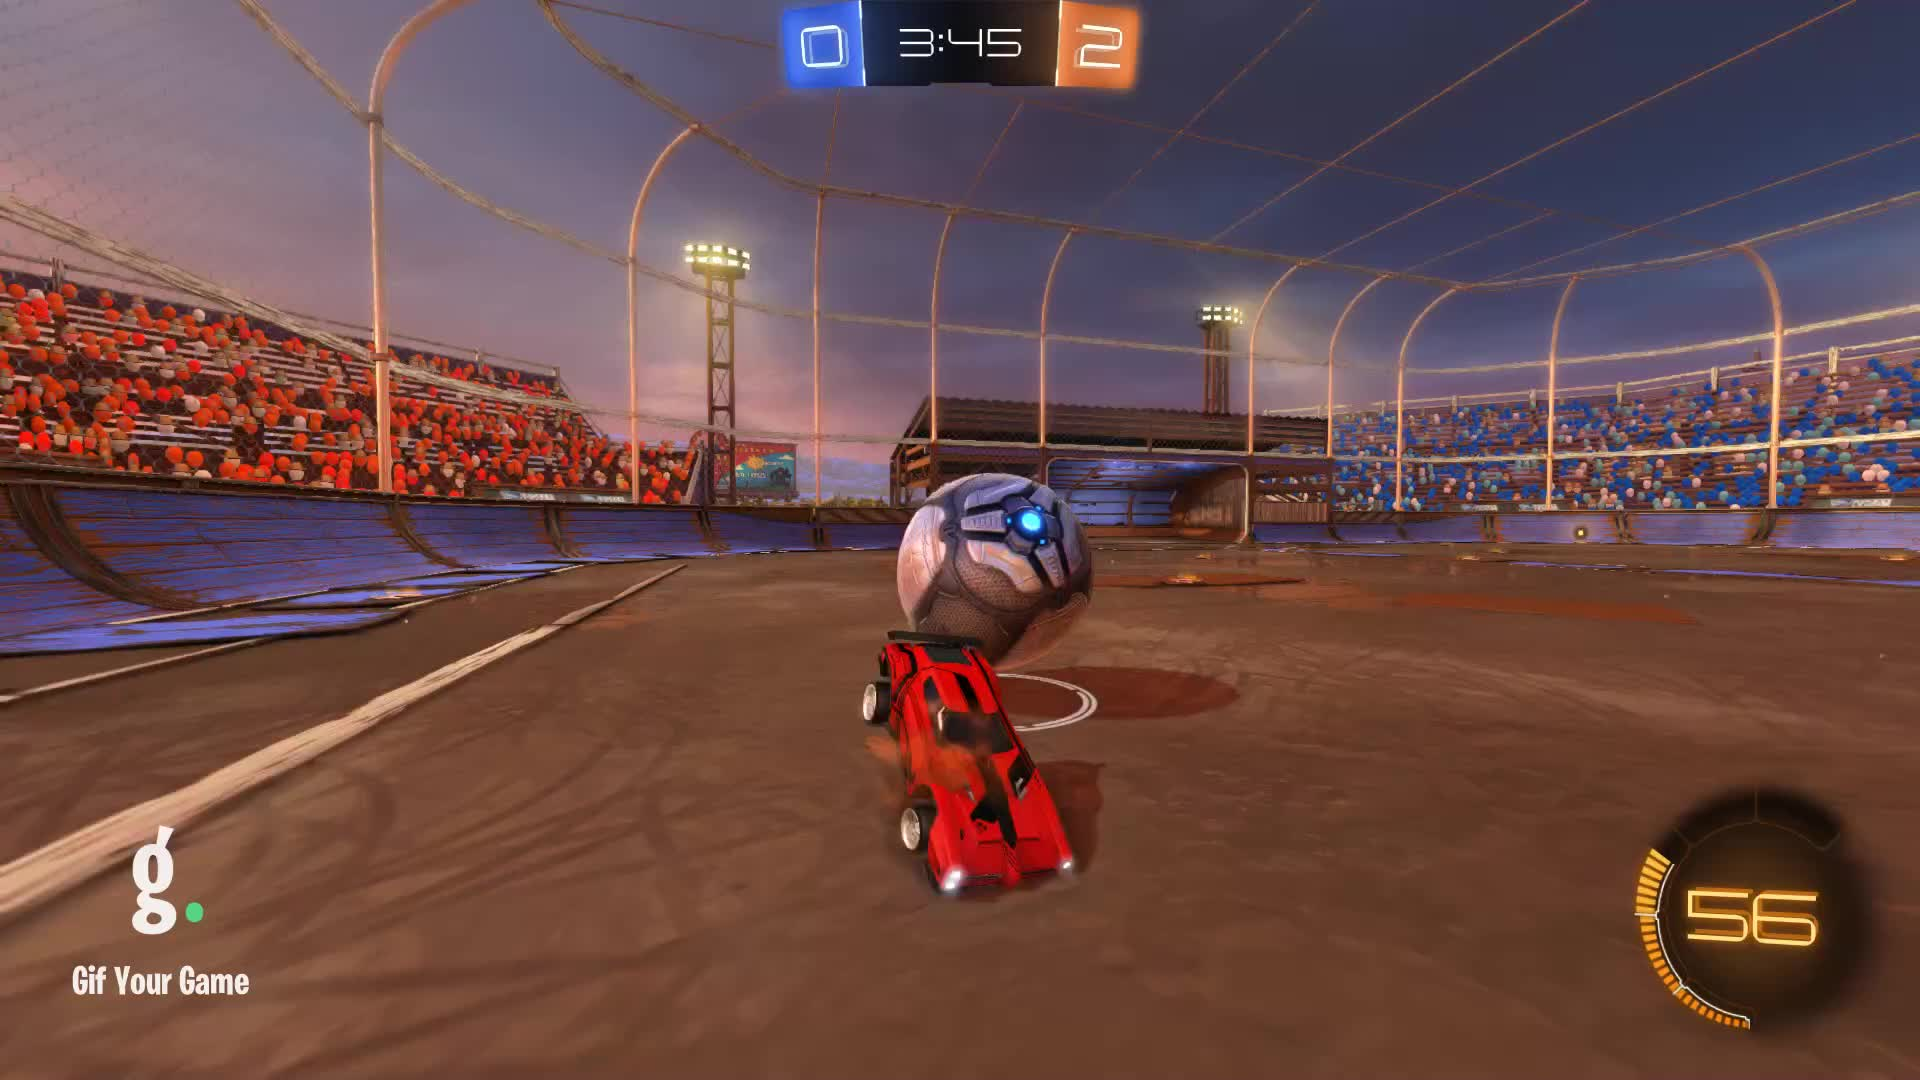 Assist, Gif Your Game, GifYourGame, Ranso, Rocket League, RocketLeague, Assist 1: Ranso GIFs